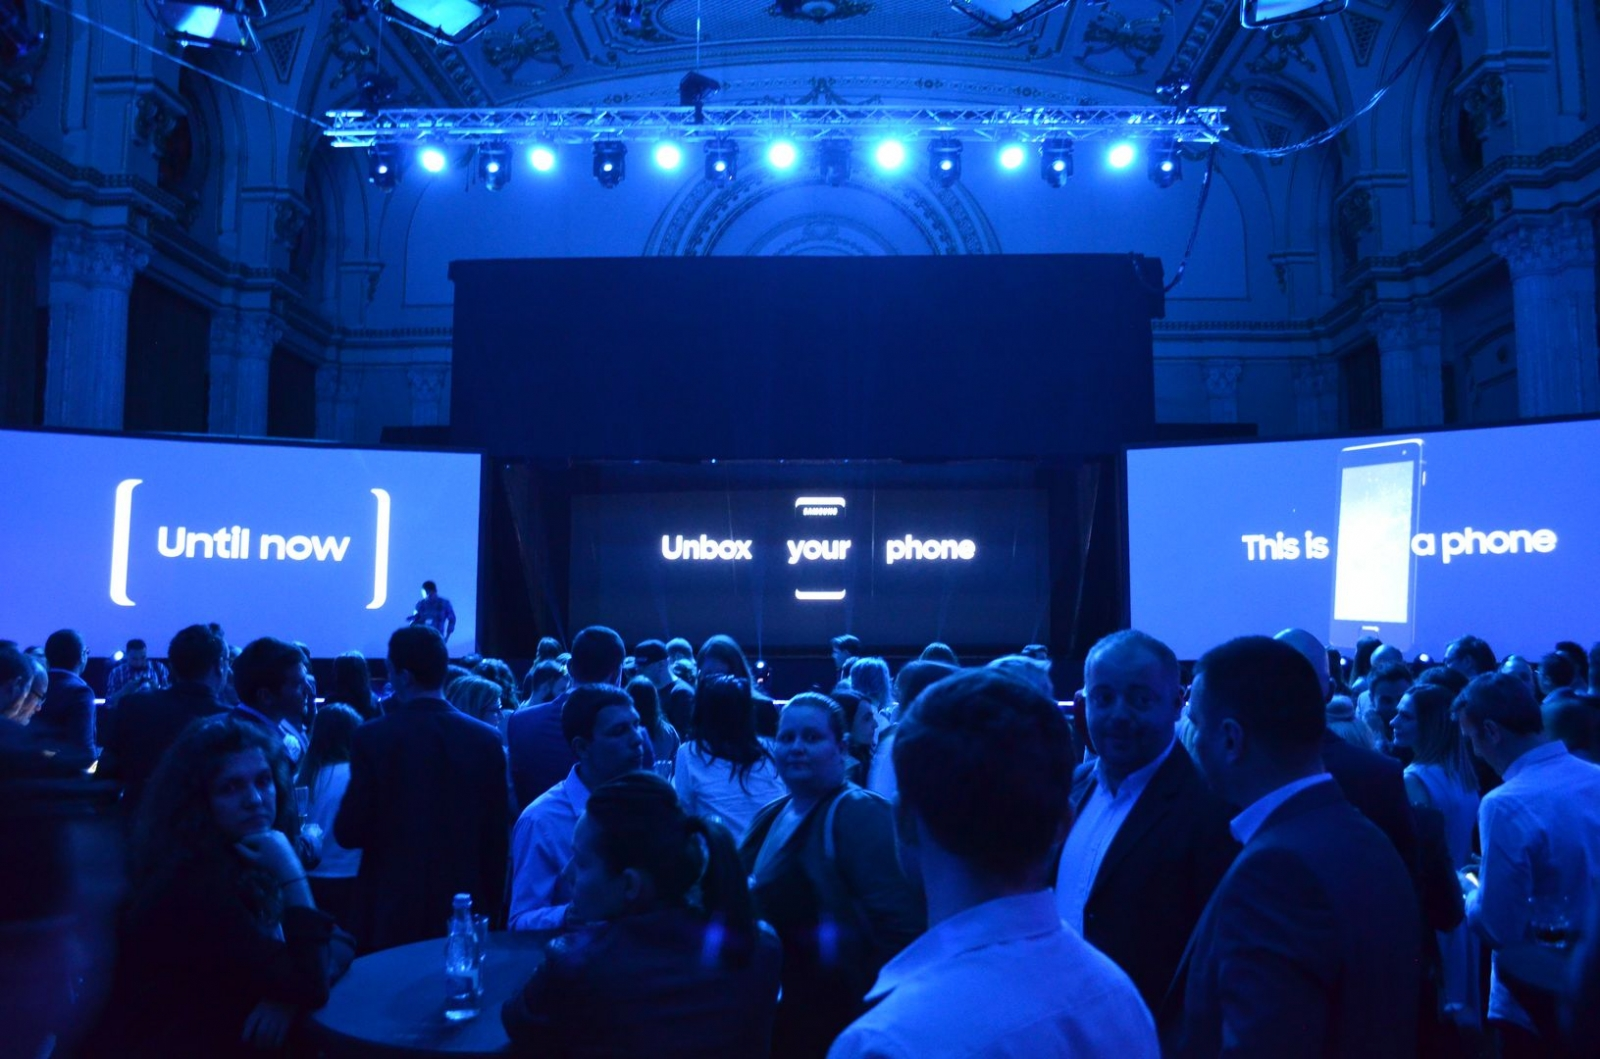 Eveniment lansare Samsung Galaxy S8 in Romania